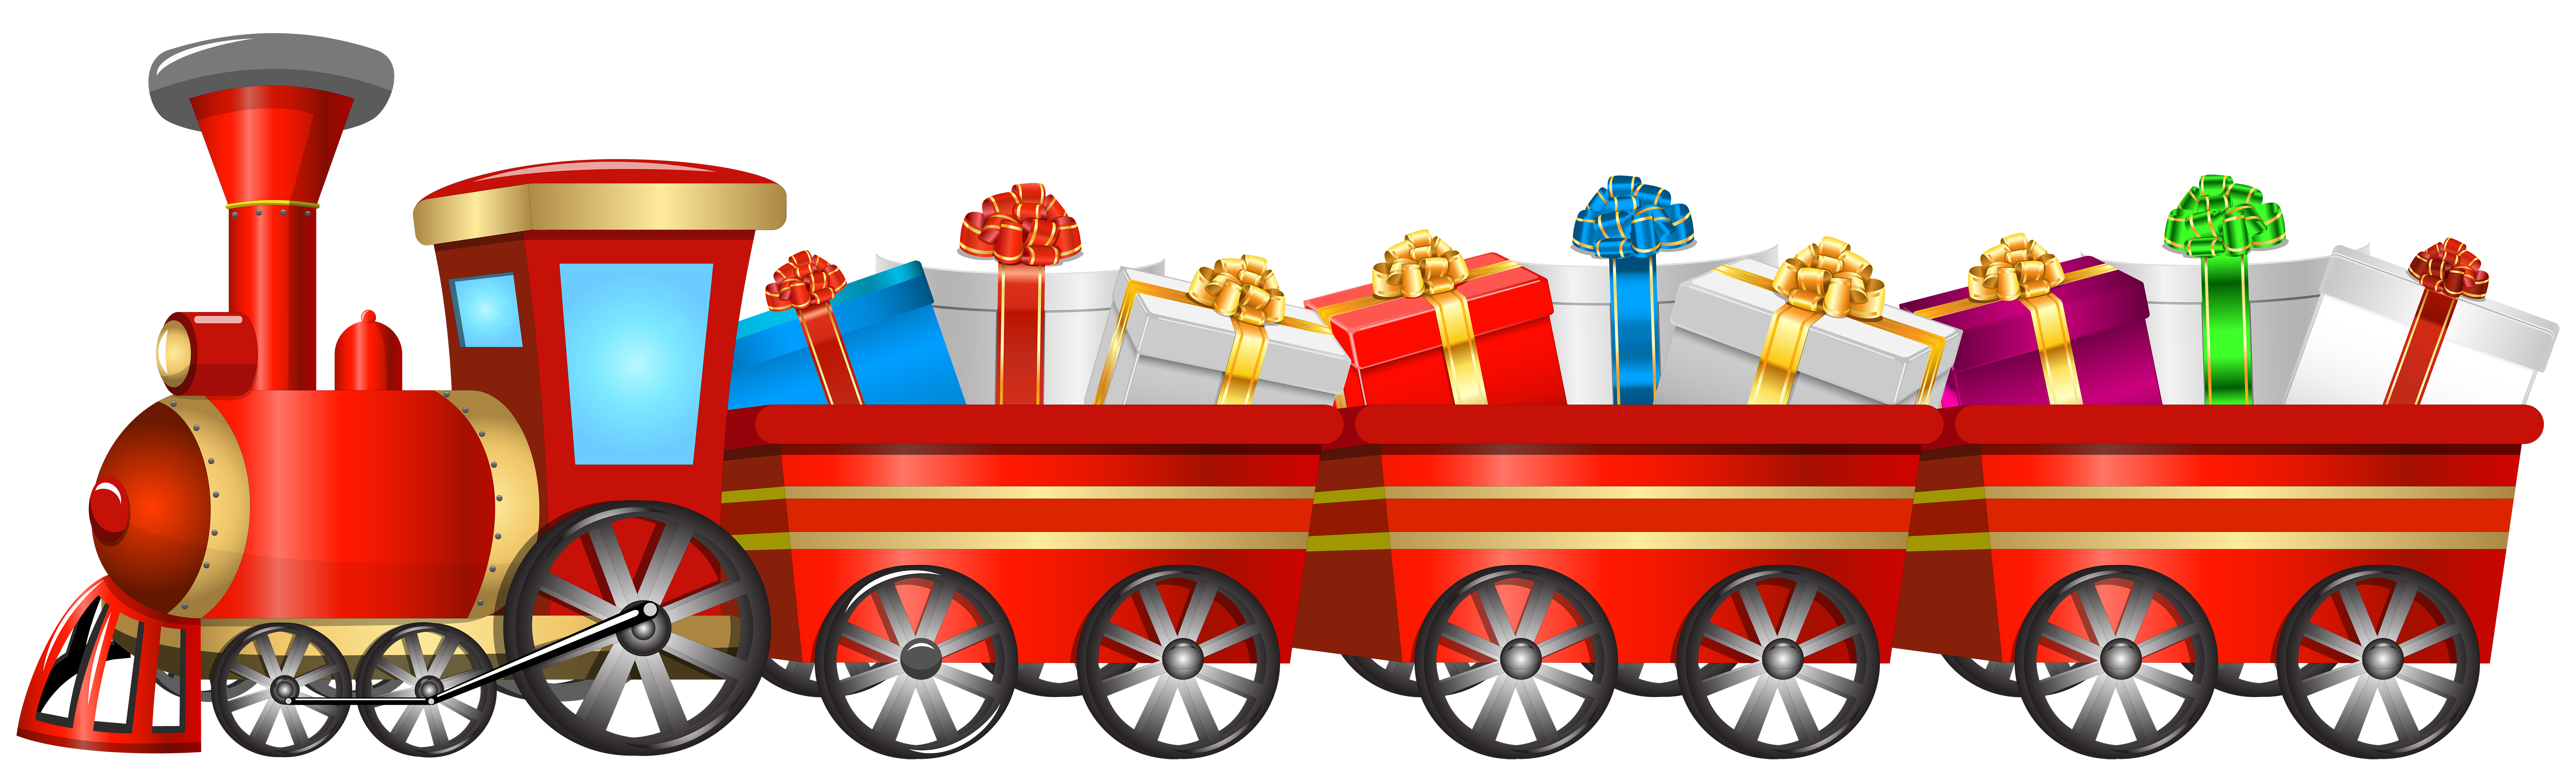 image download Free christmas cliparts download. Train clipart for kids